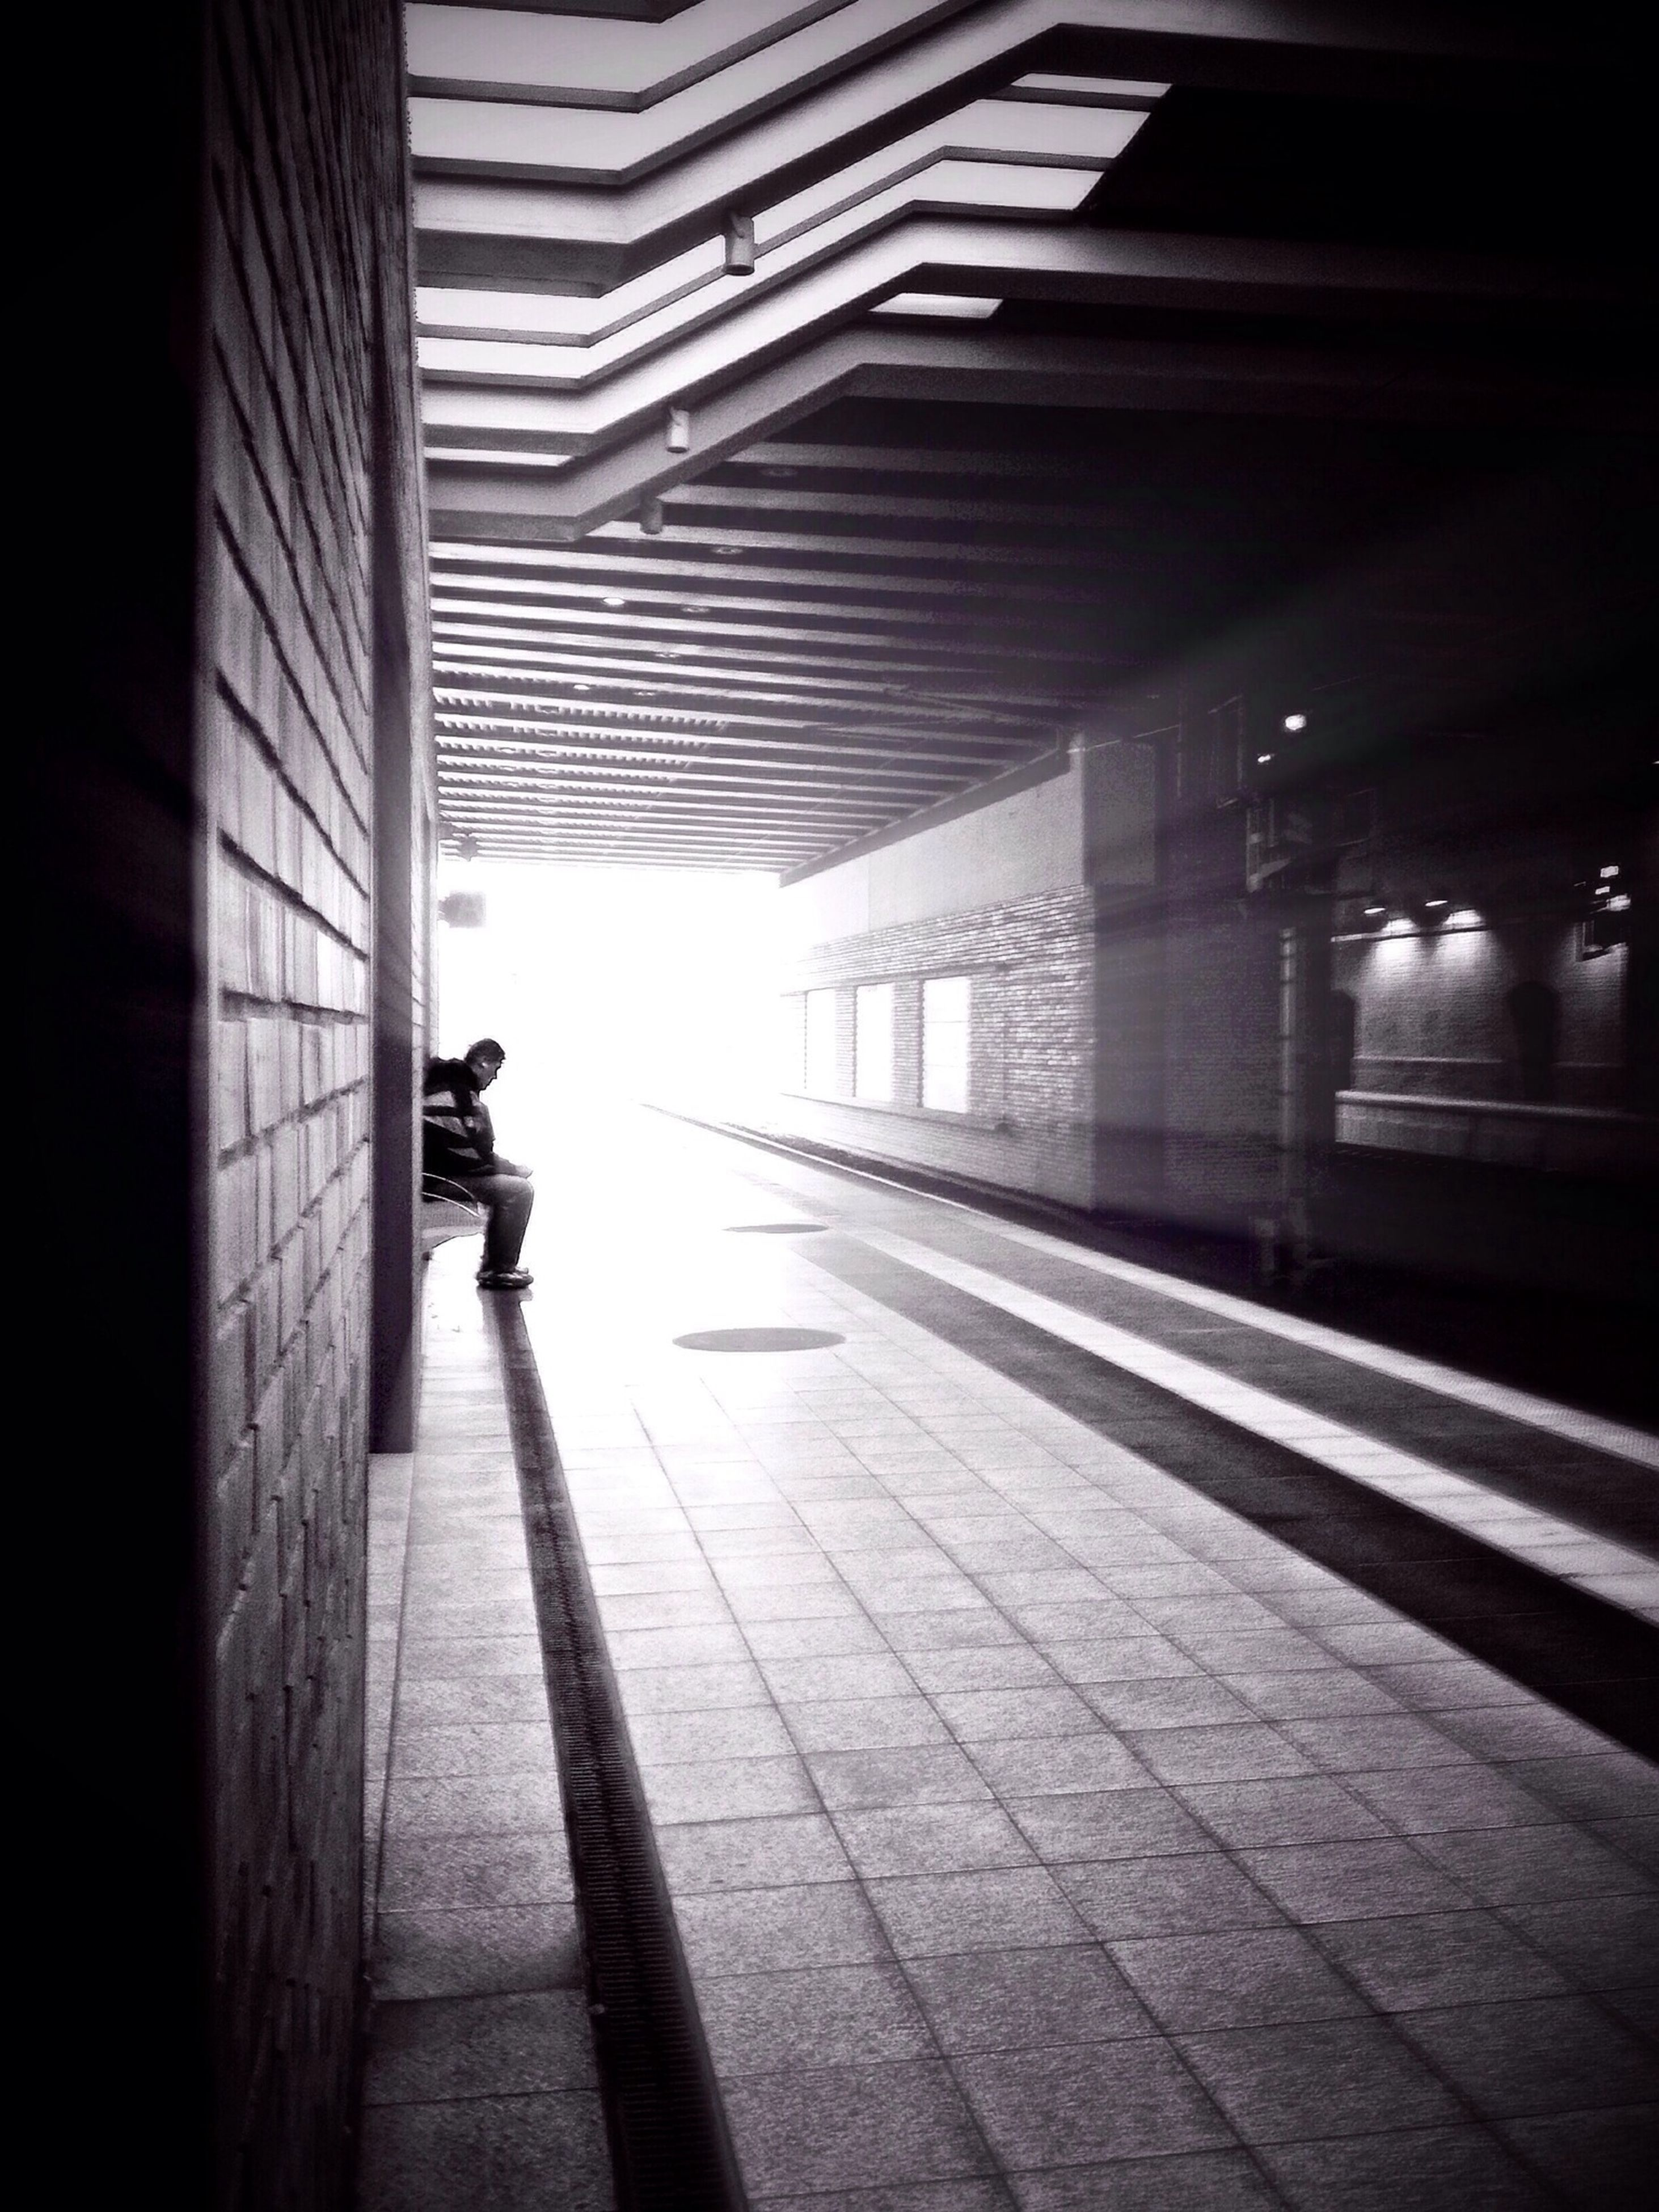 indoors, walking, men, full length, transportation, lifestyles, rear view, railroad station, illuminated, railroad station platform, built structure, person, architecture, on the move, public transportation, subway, the way forward, city life